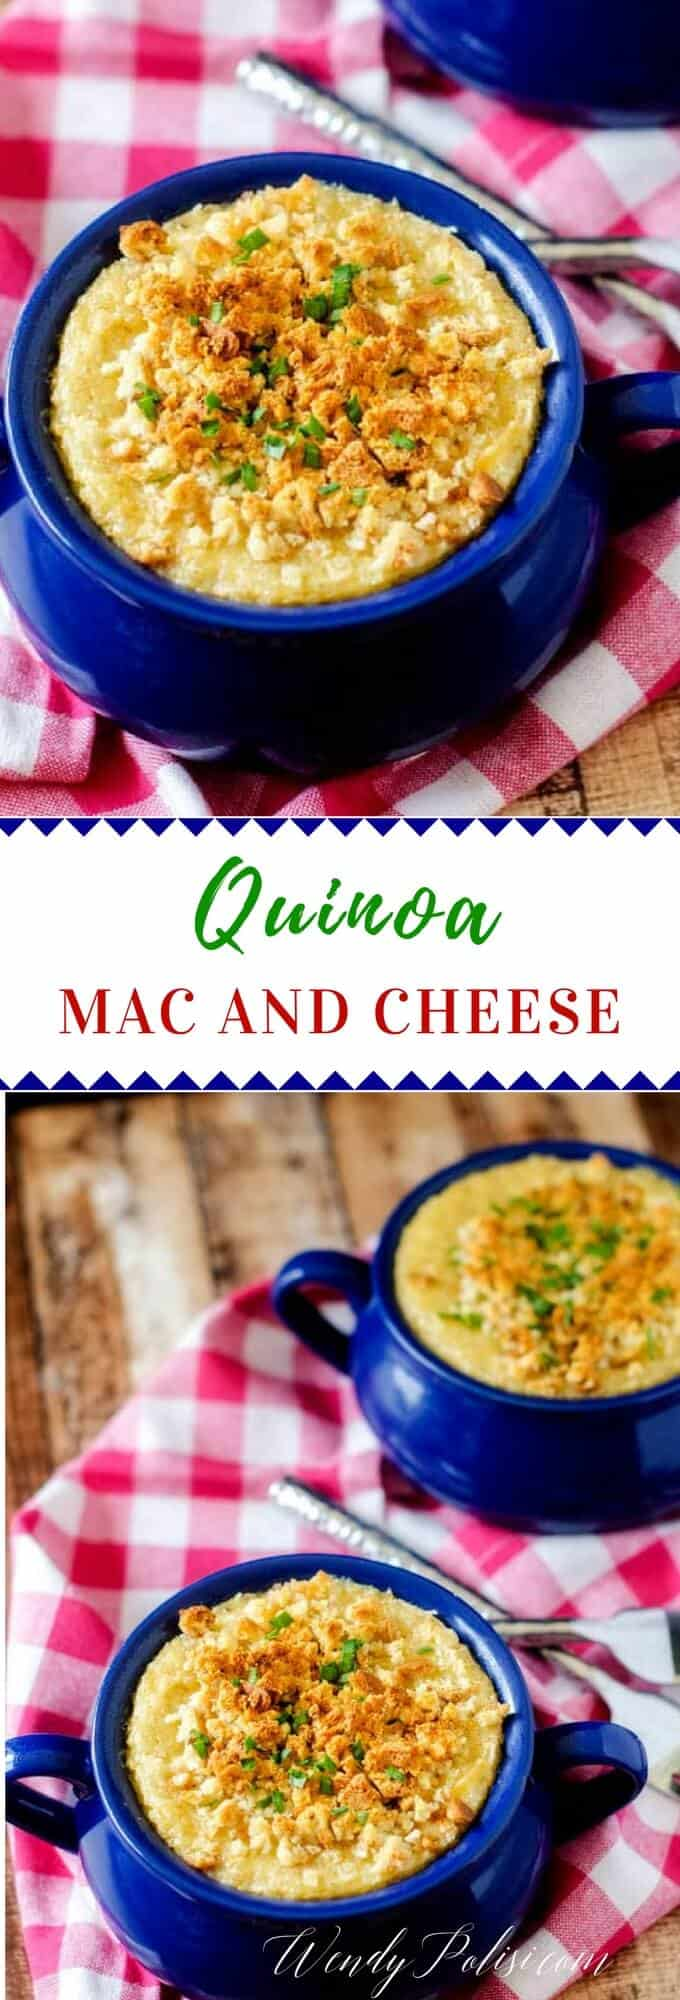 This Quinoa Mac n Cheese offers all the creamy yumminess of traditional Mac n Cheese with the health benefits of quinoa. A favorite quinoa recipe for kids. #glutenfree #quinoa #quinoarecipes #vegetarian